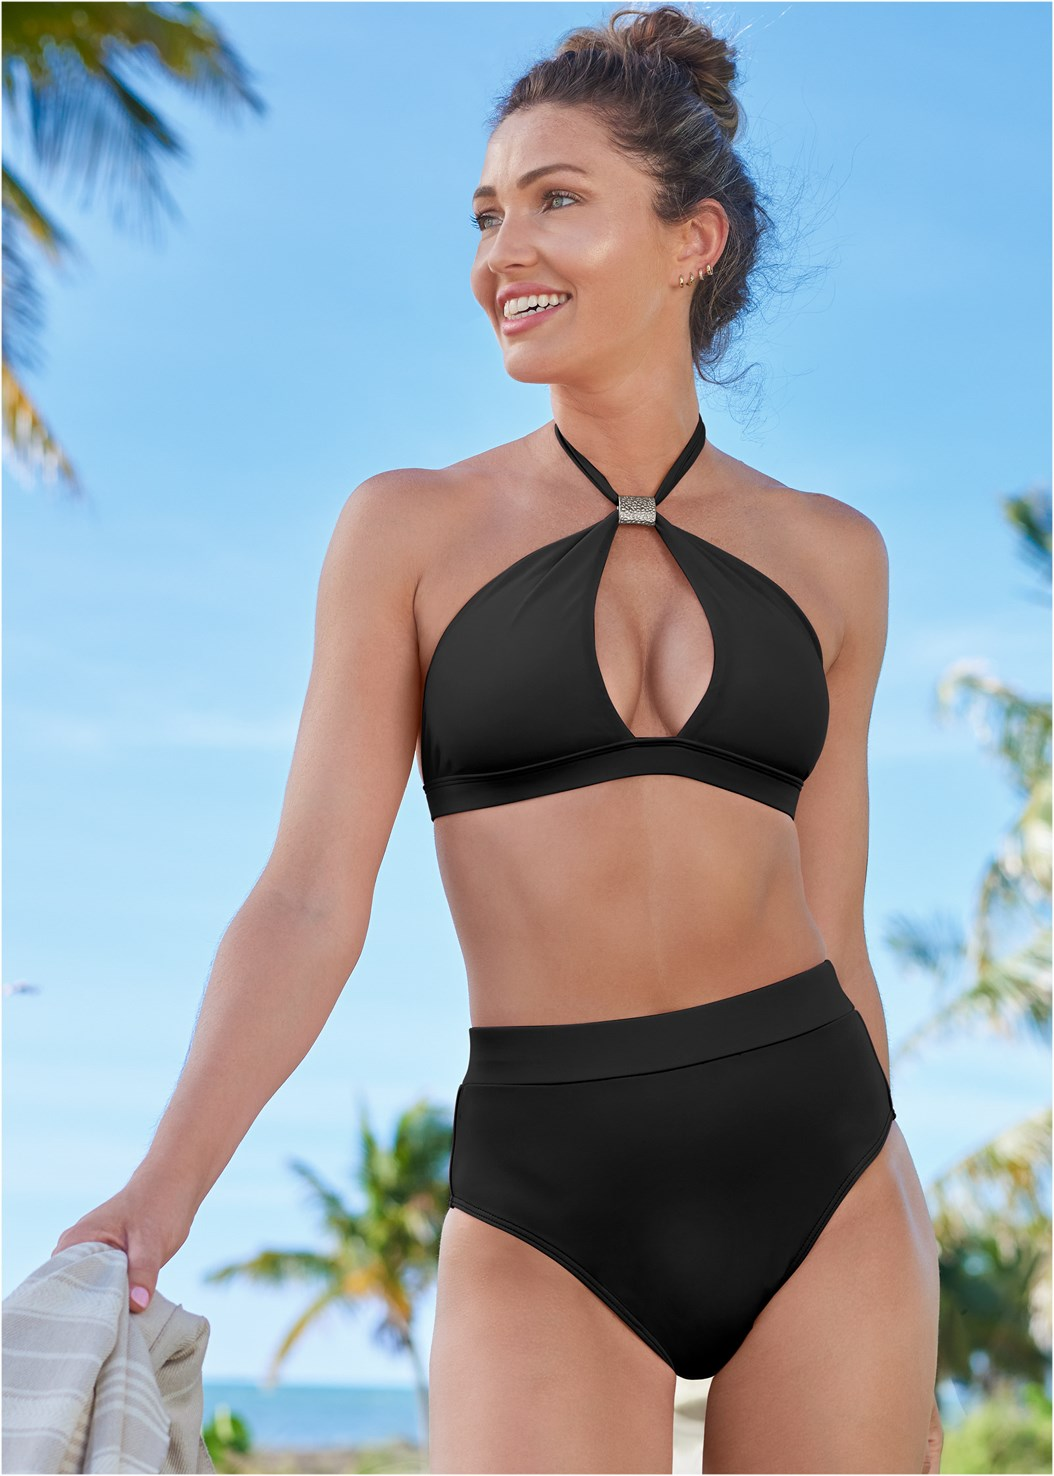 Bondi Beach Top,The Mimi High Rise Bottom,Wrapped Mid Rise Bottom,Swim Short,Front Tie Kimono Cover-Up,Circular Straw Bag